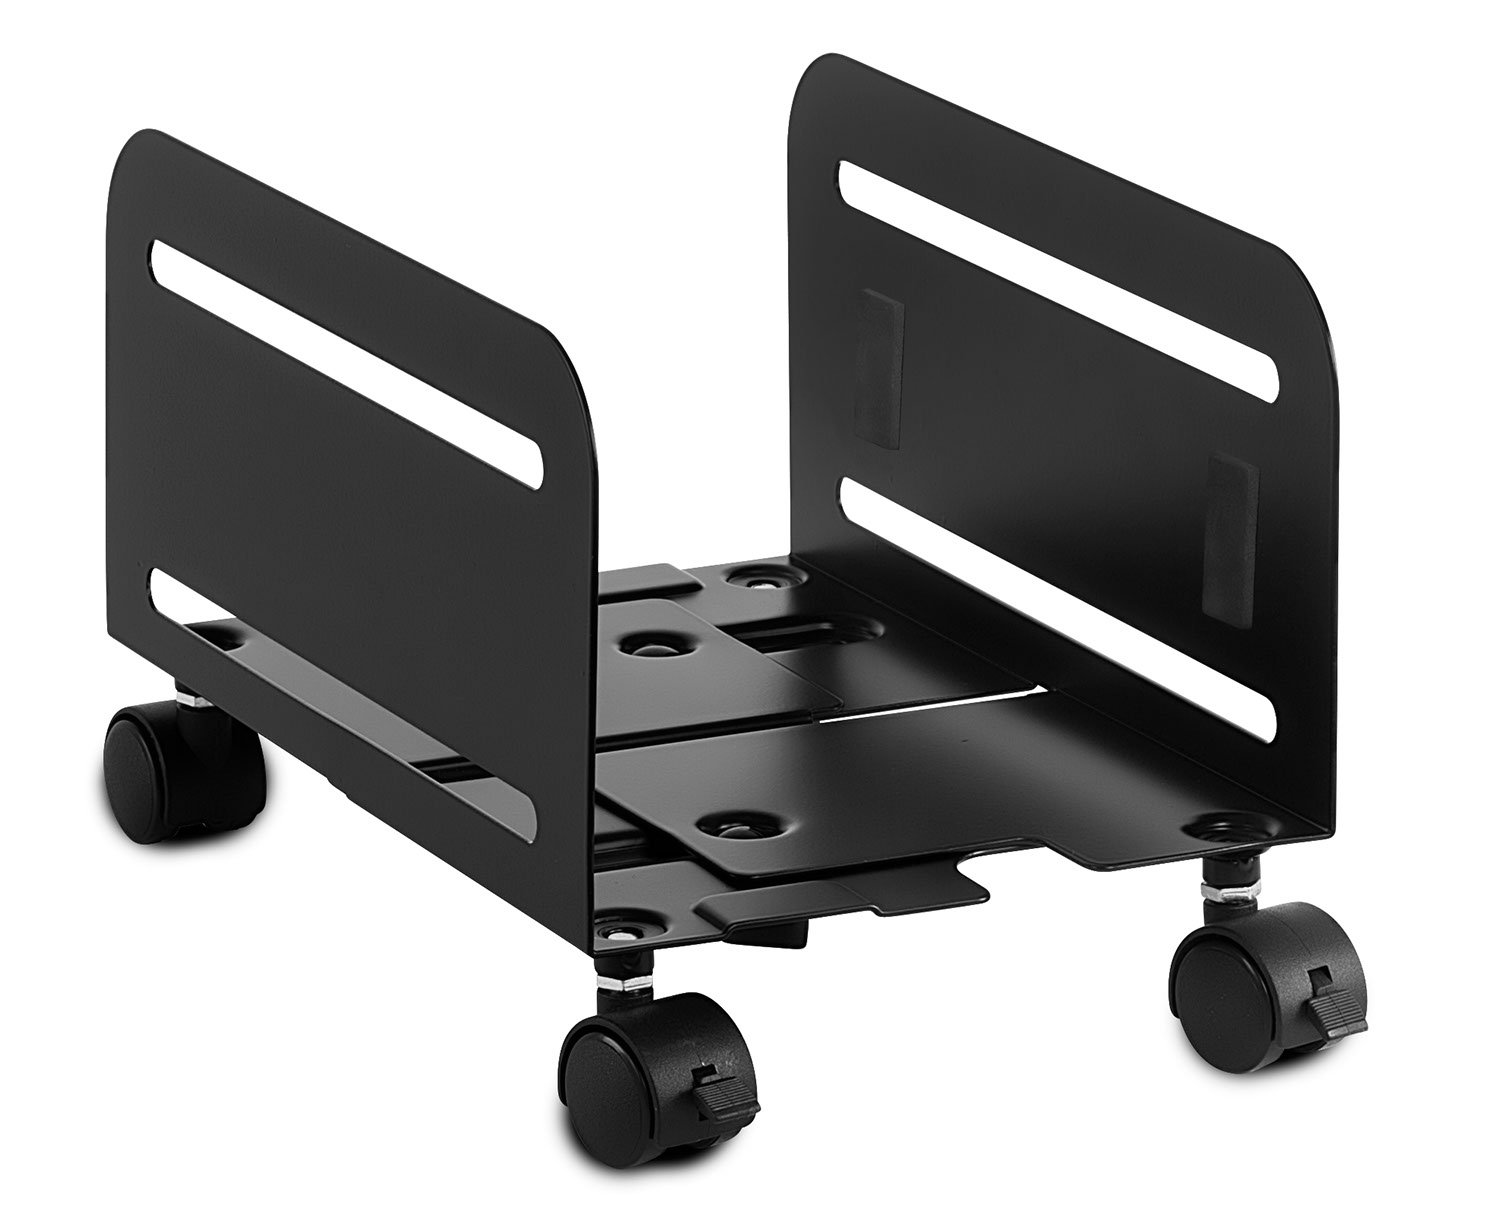 Mount-It! CPU Stand with 4 Caster wheels, Heavy Duty Steel Computer Caddy with Ventilation and Adjustable Width from 4.87 to 8.5 inches